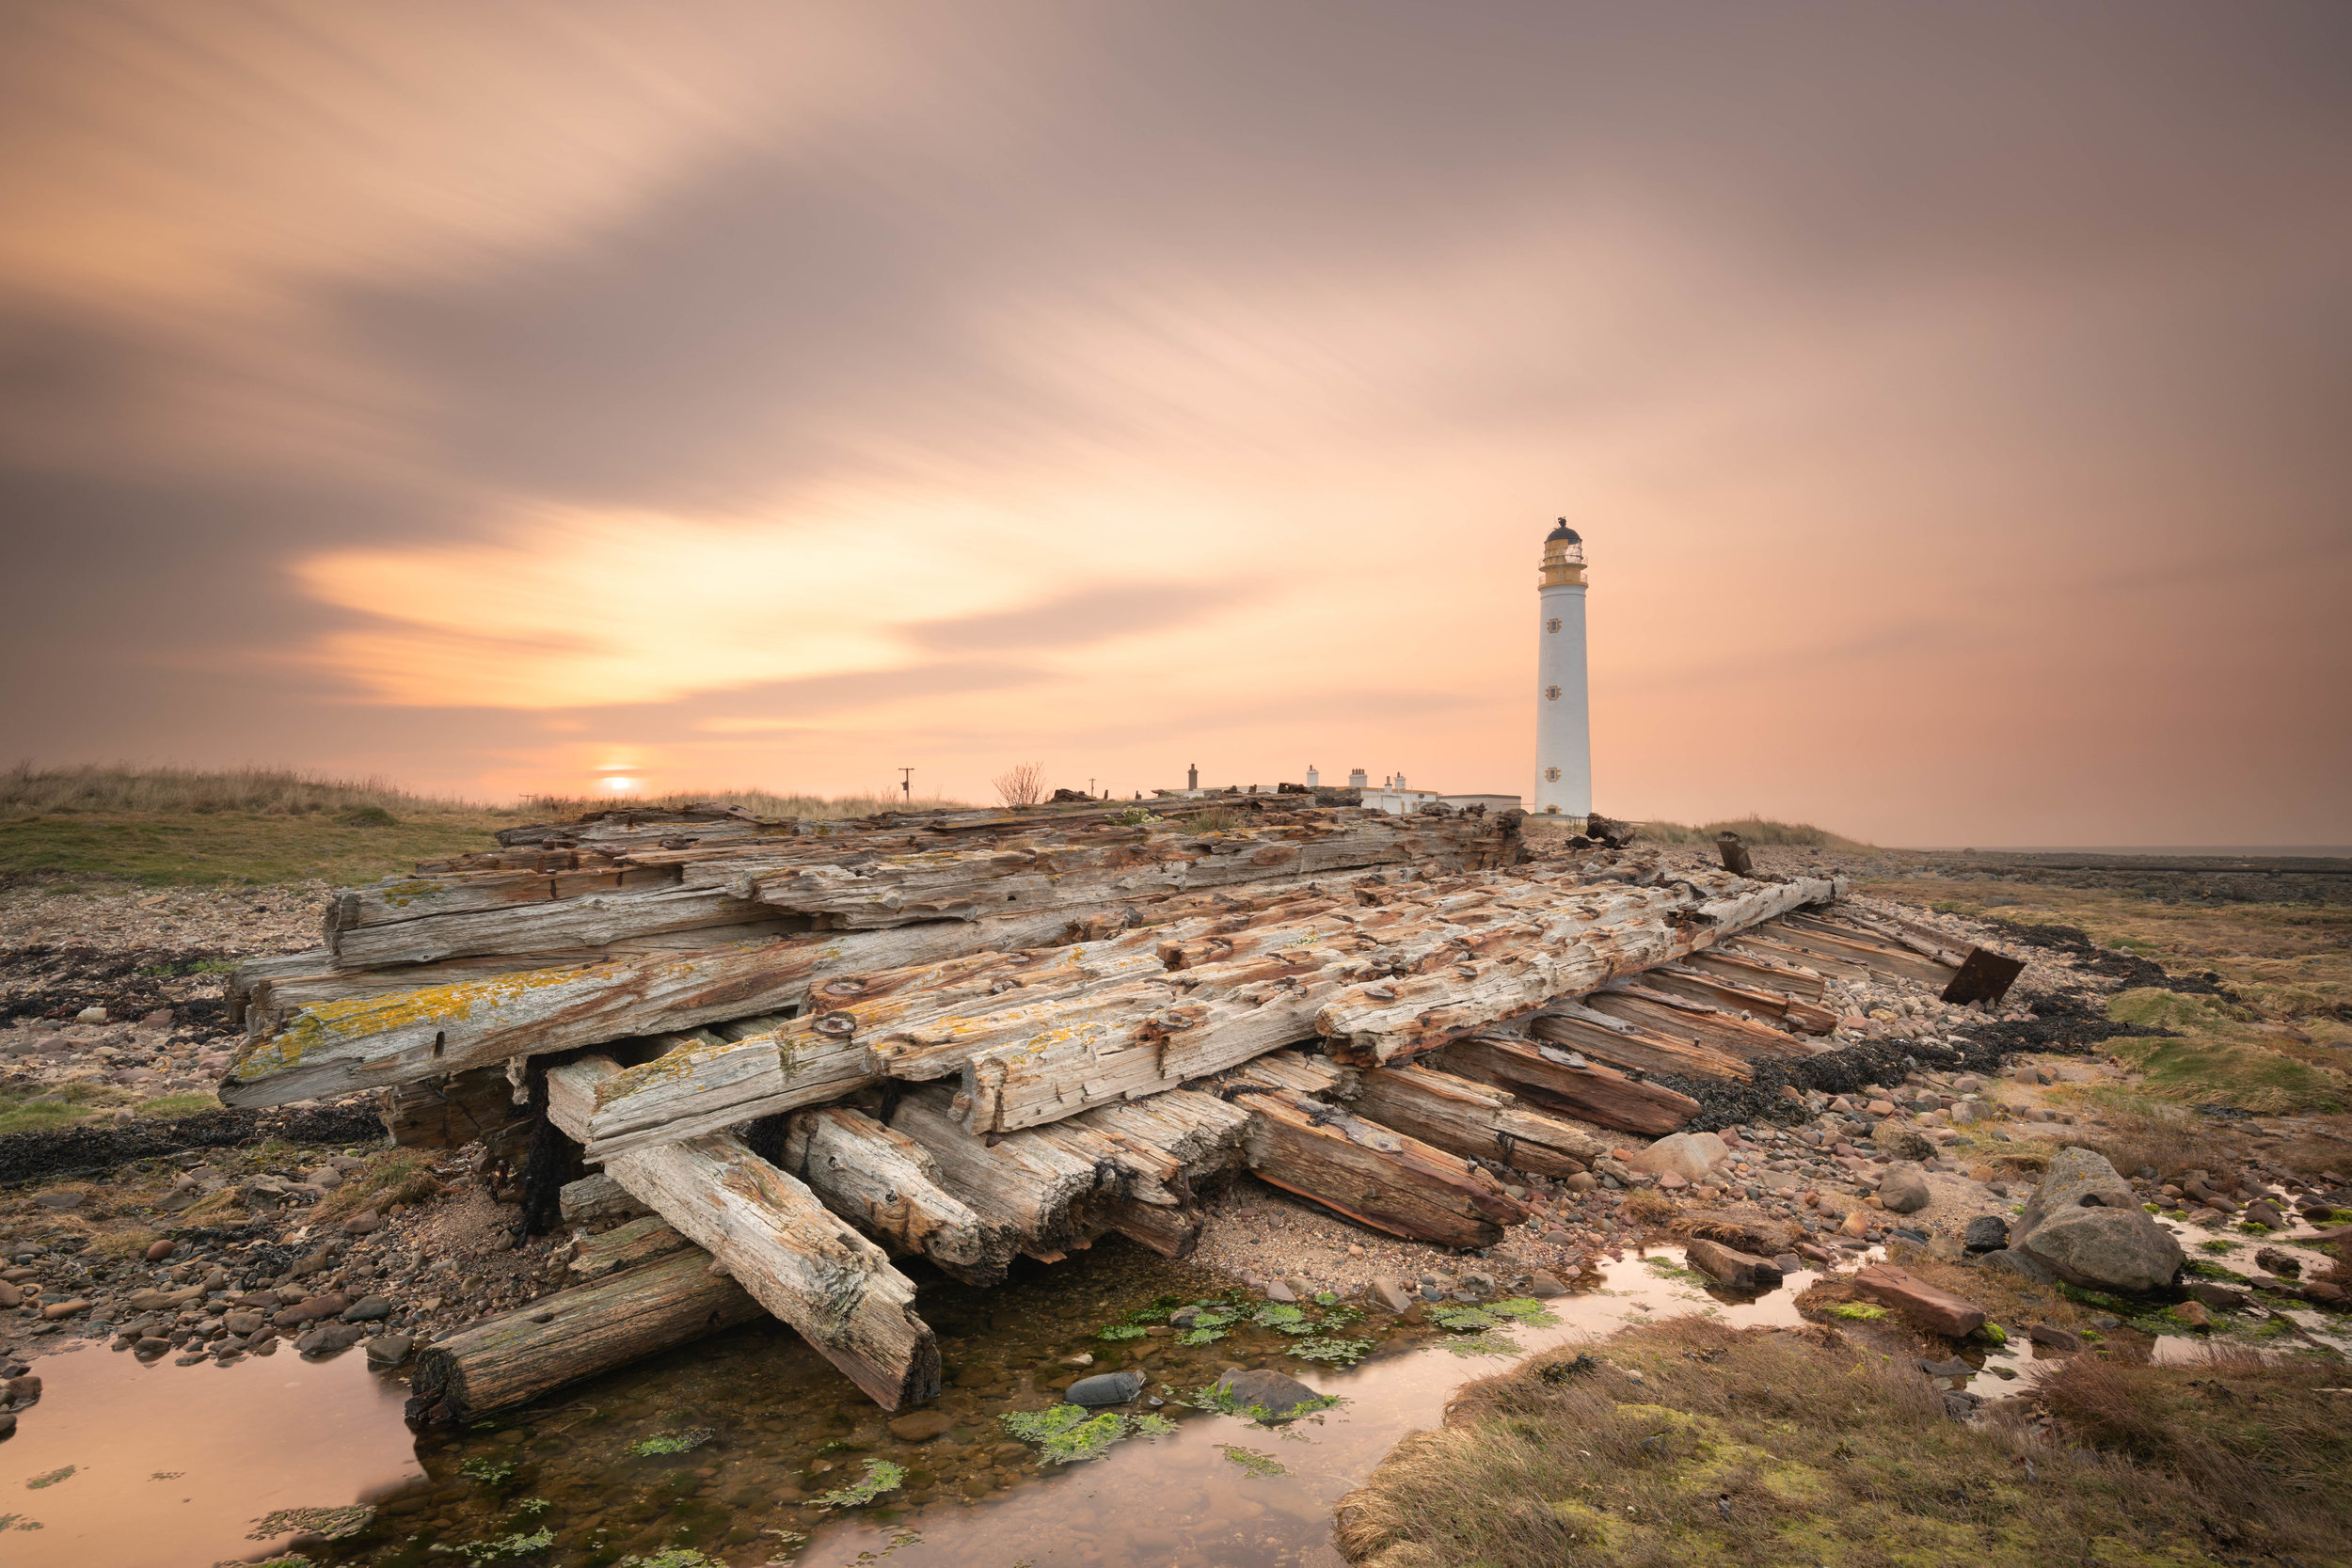 The Lighthouse & The Wreck